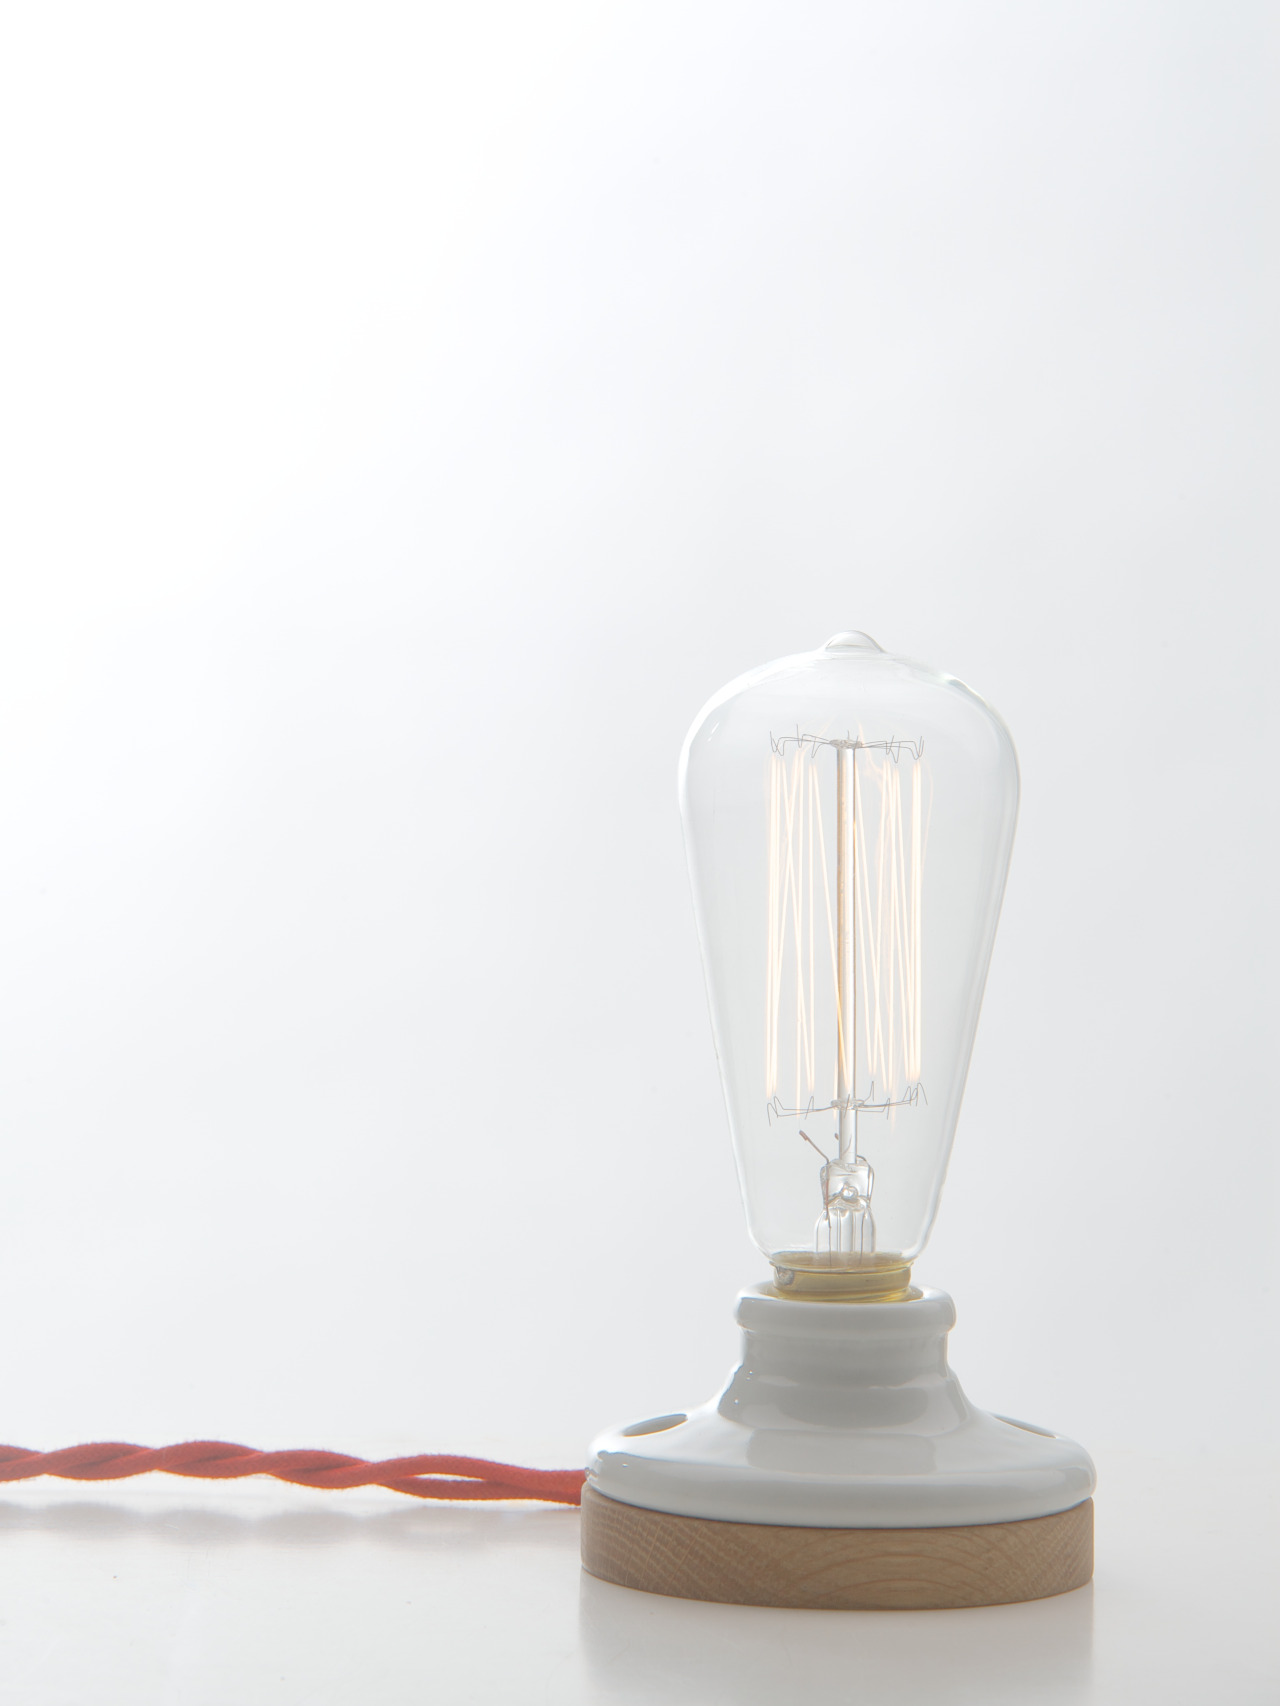 Introducing one of our new lamps this week at DesignMarch in Iceland, the handcrafted Oak & Porcelain Lamp.